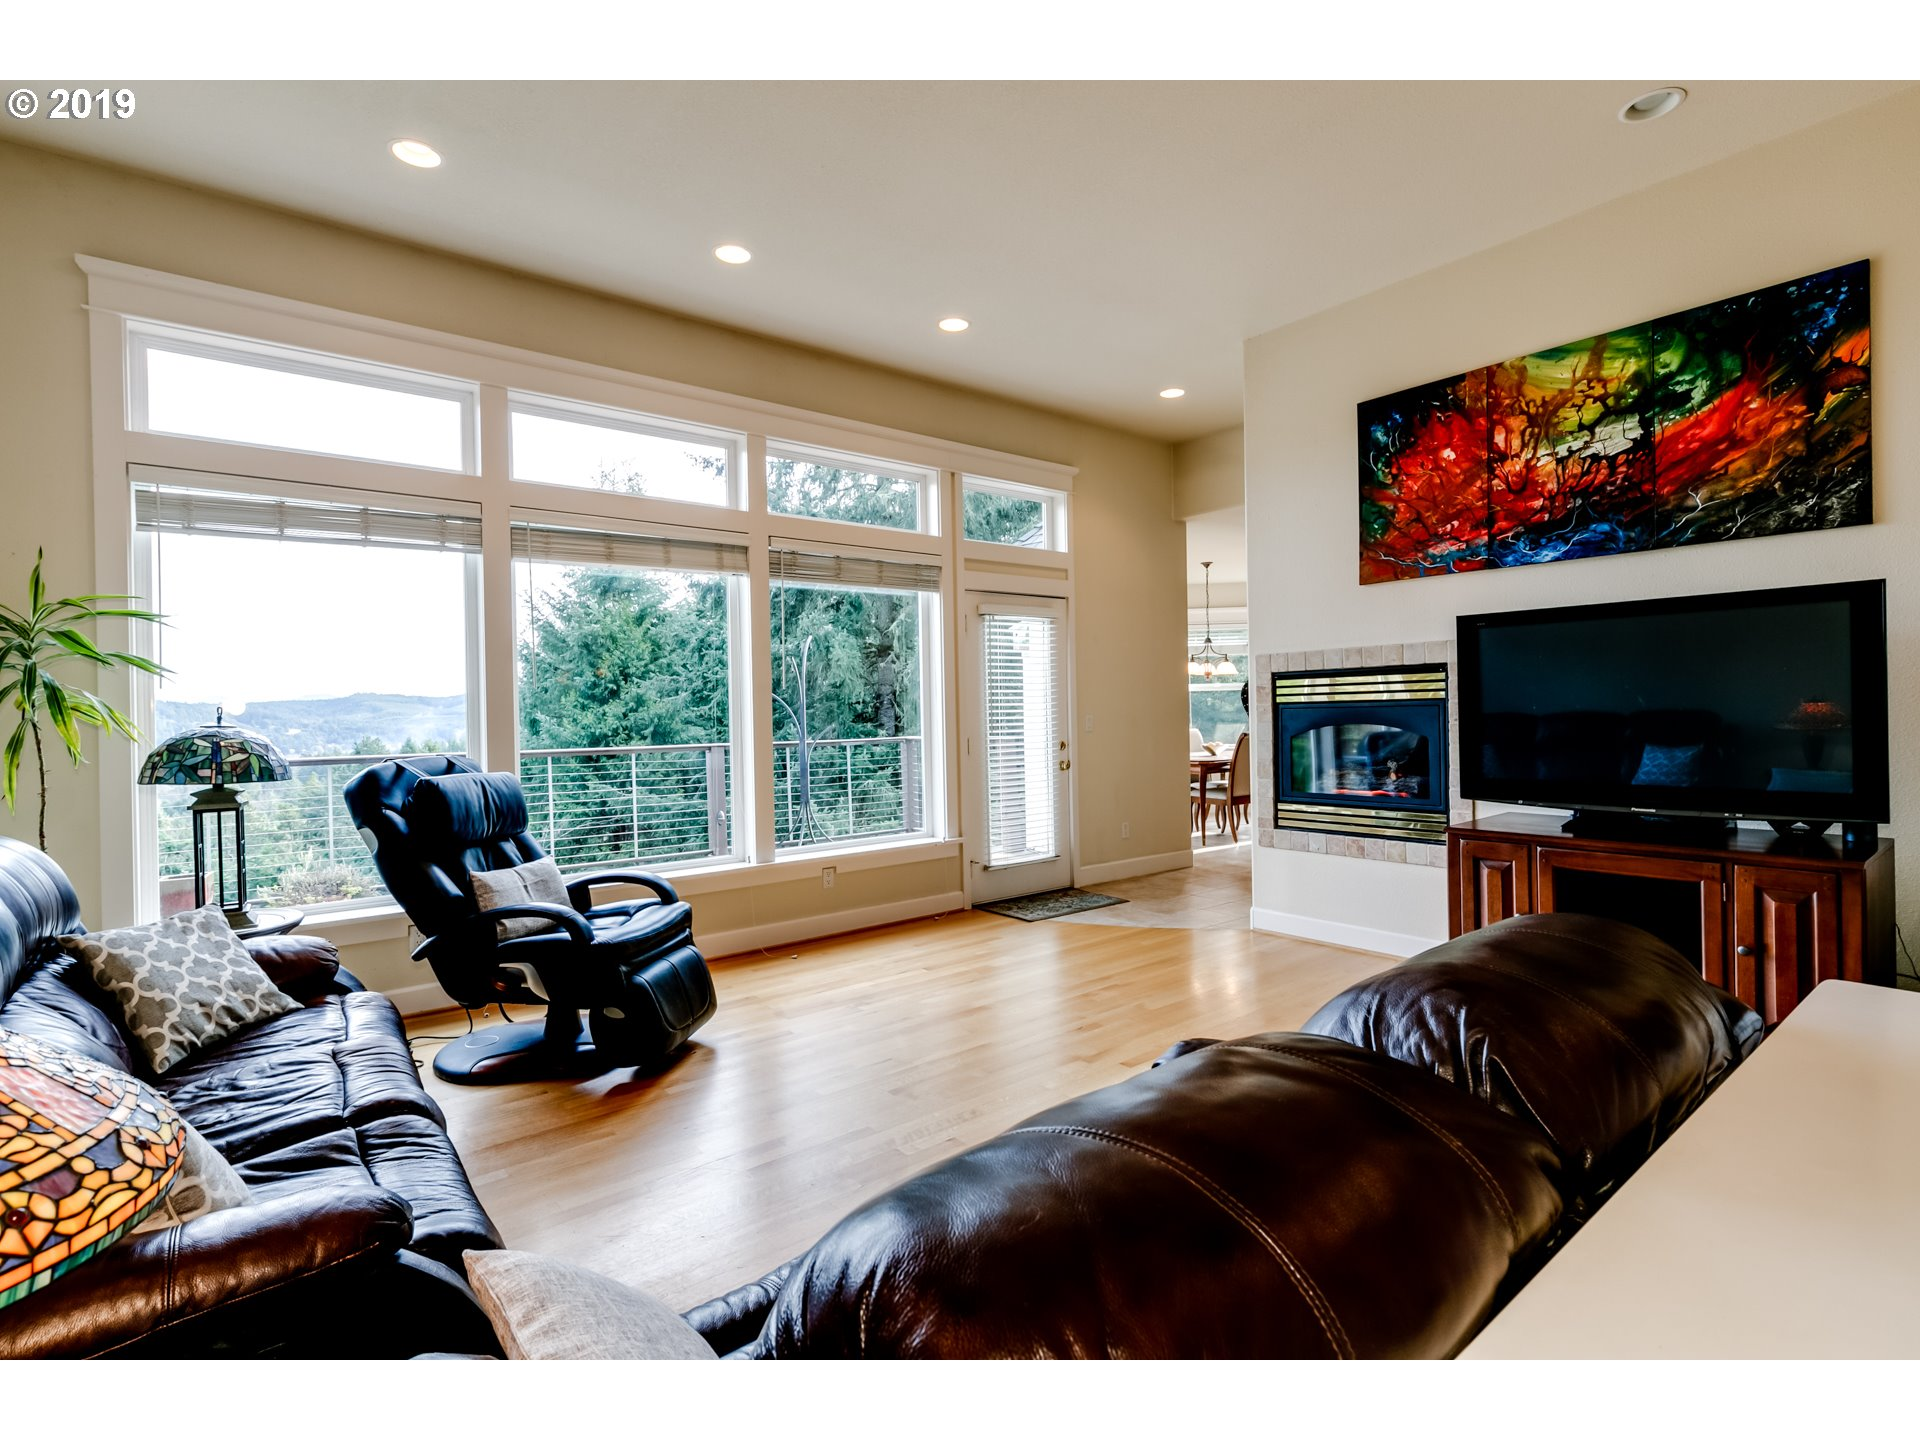 4136 sq. ft 4 bedrooms 3 bathrooms  House For Sale,Cottage Grove, OR